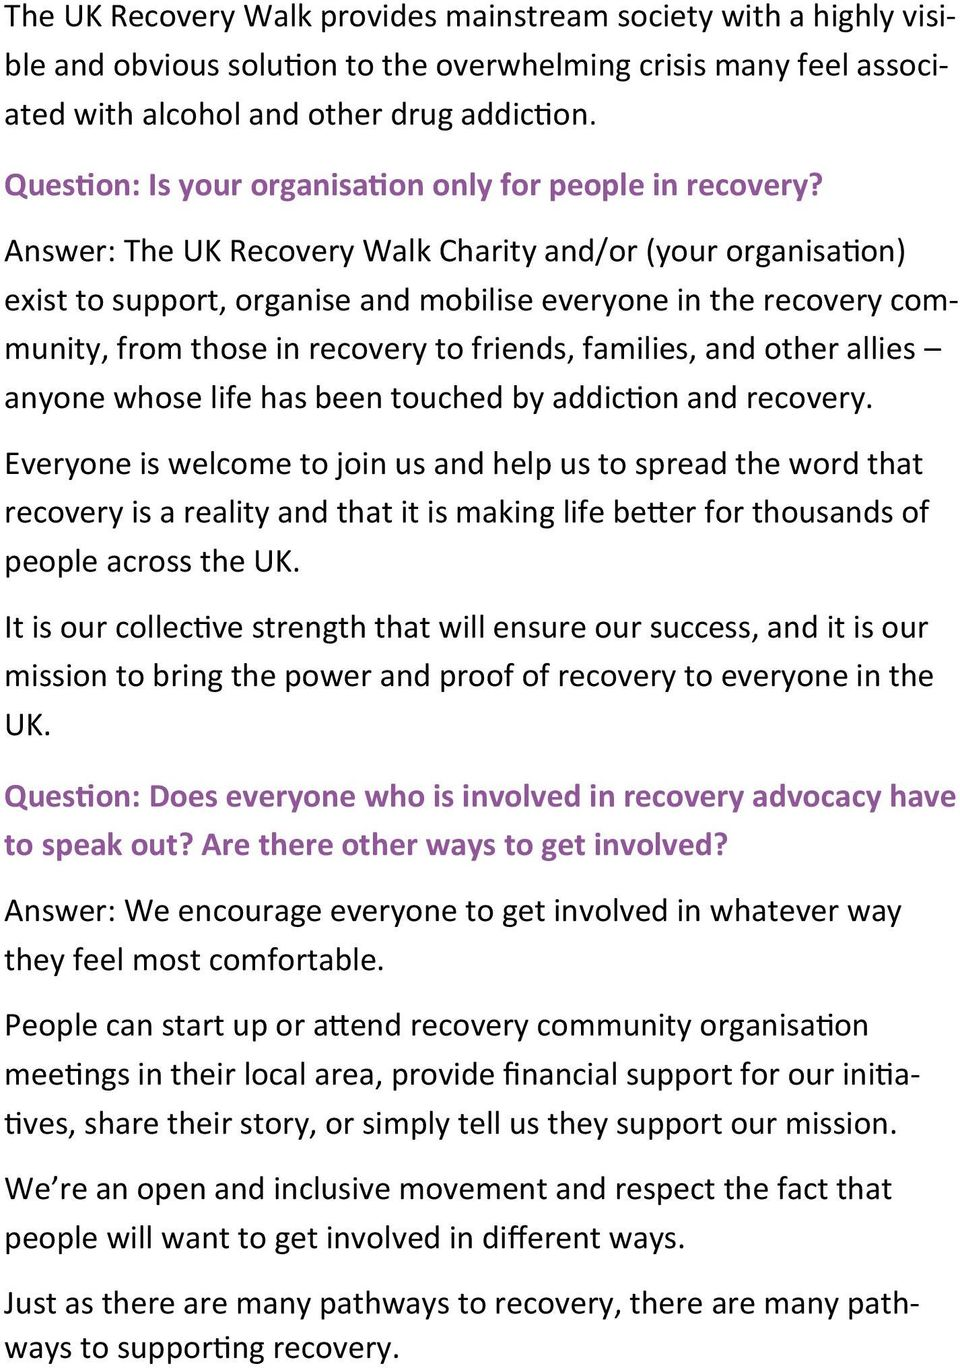 Answer: The UK Recovery Walk Charity and/or (your organisation) exist to support, organise and mobilise everyone in the recovery community, from those in recovery to friends, families, and other